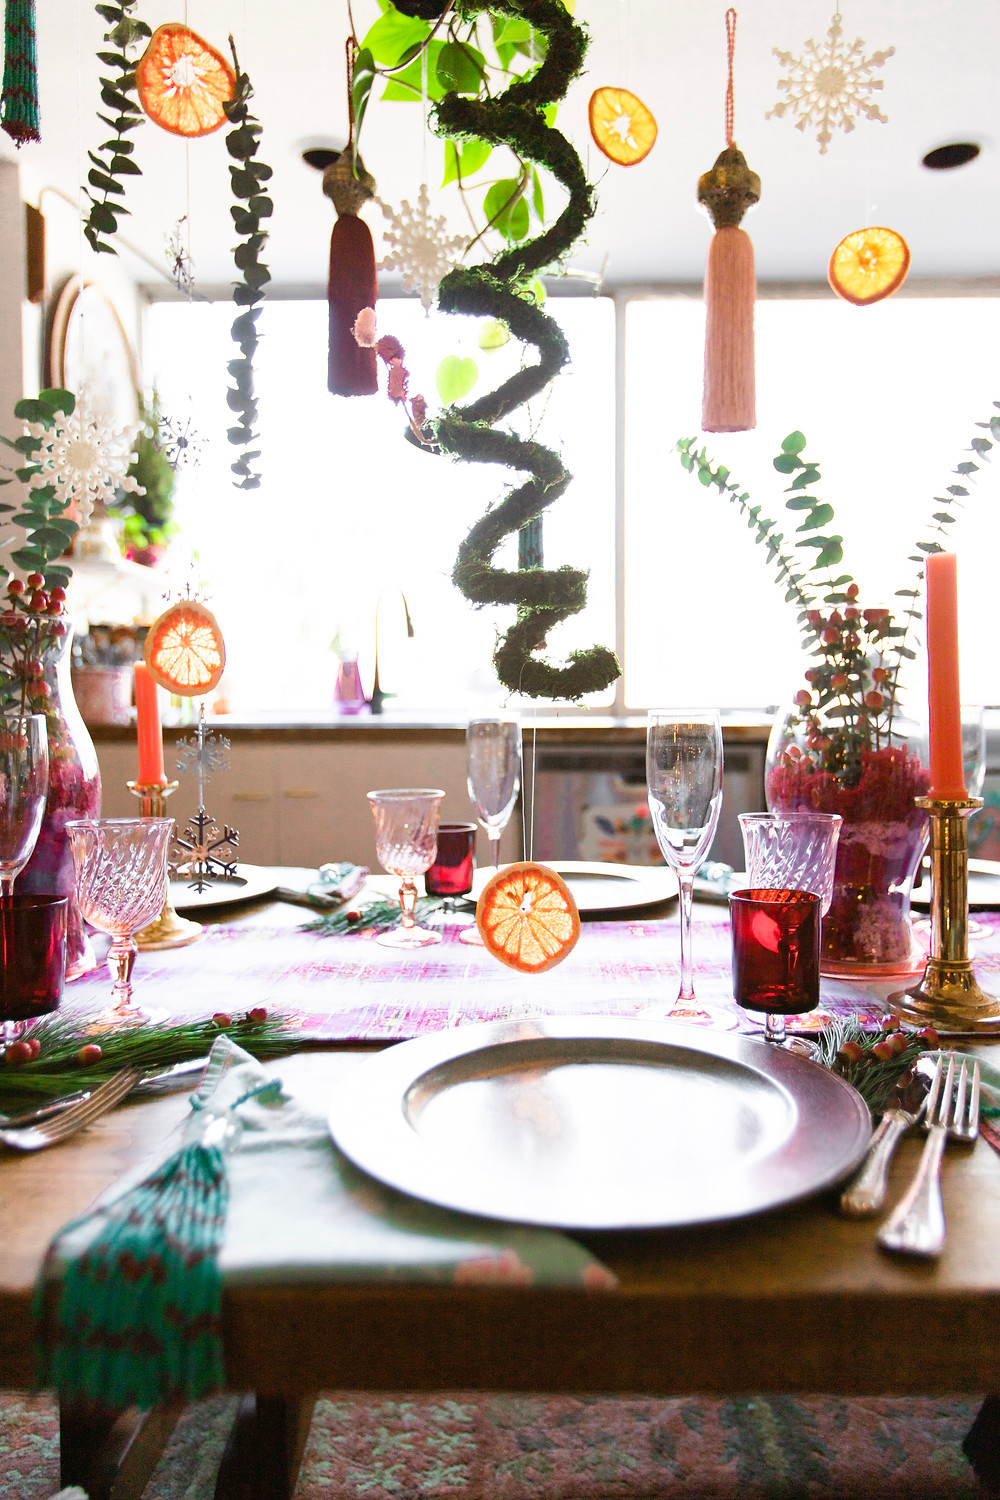 Cheerful holiday table setting with moss, dried citrus, snowflakes, tassels, vintage tableware